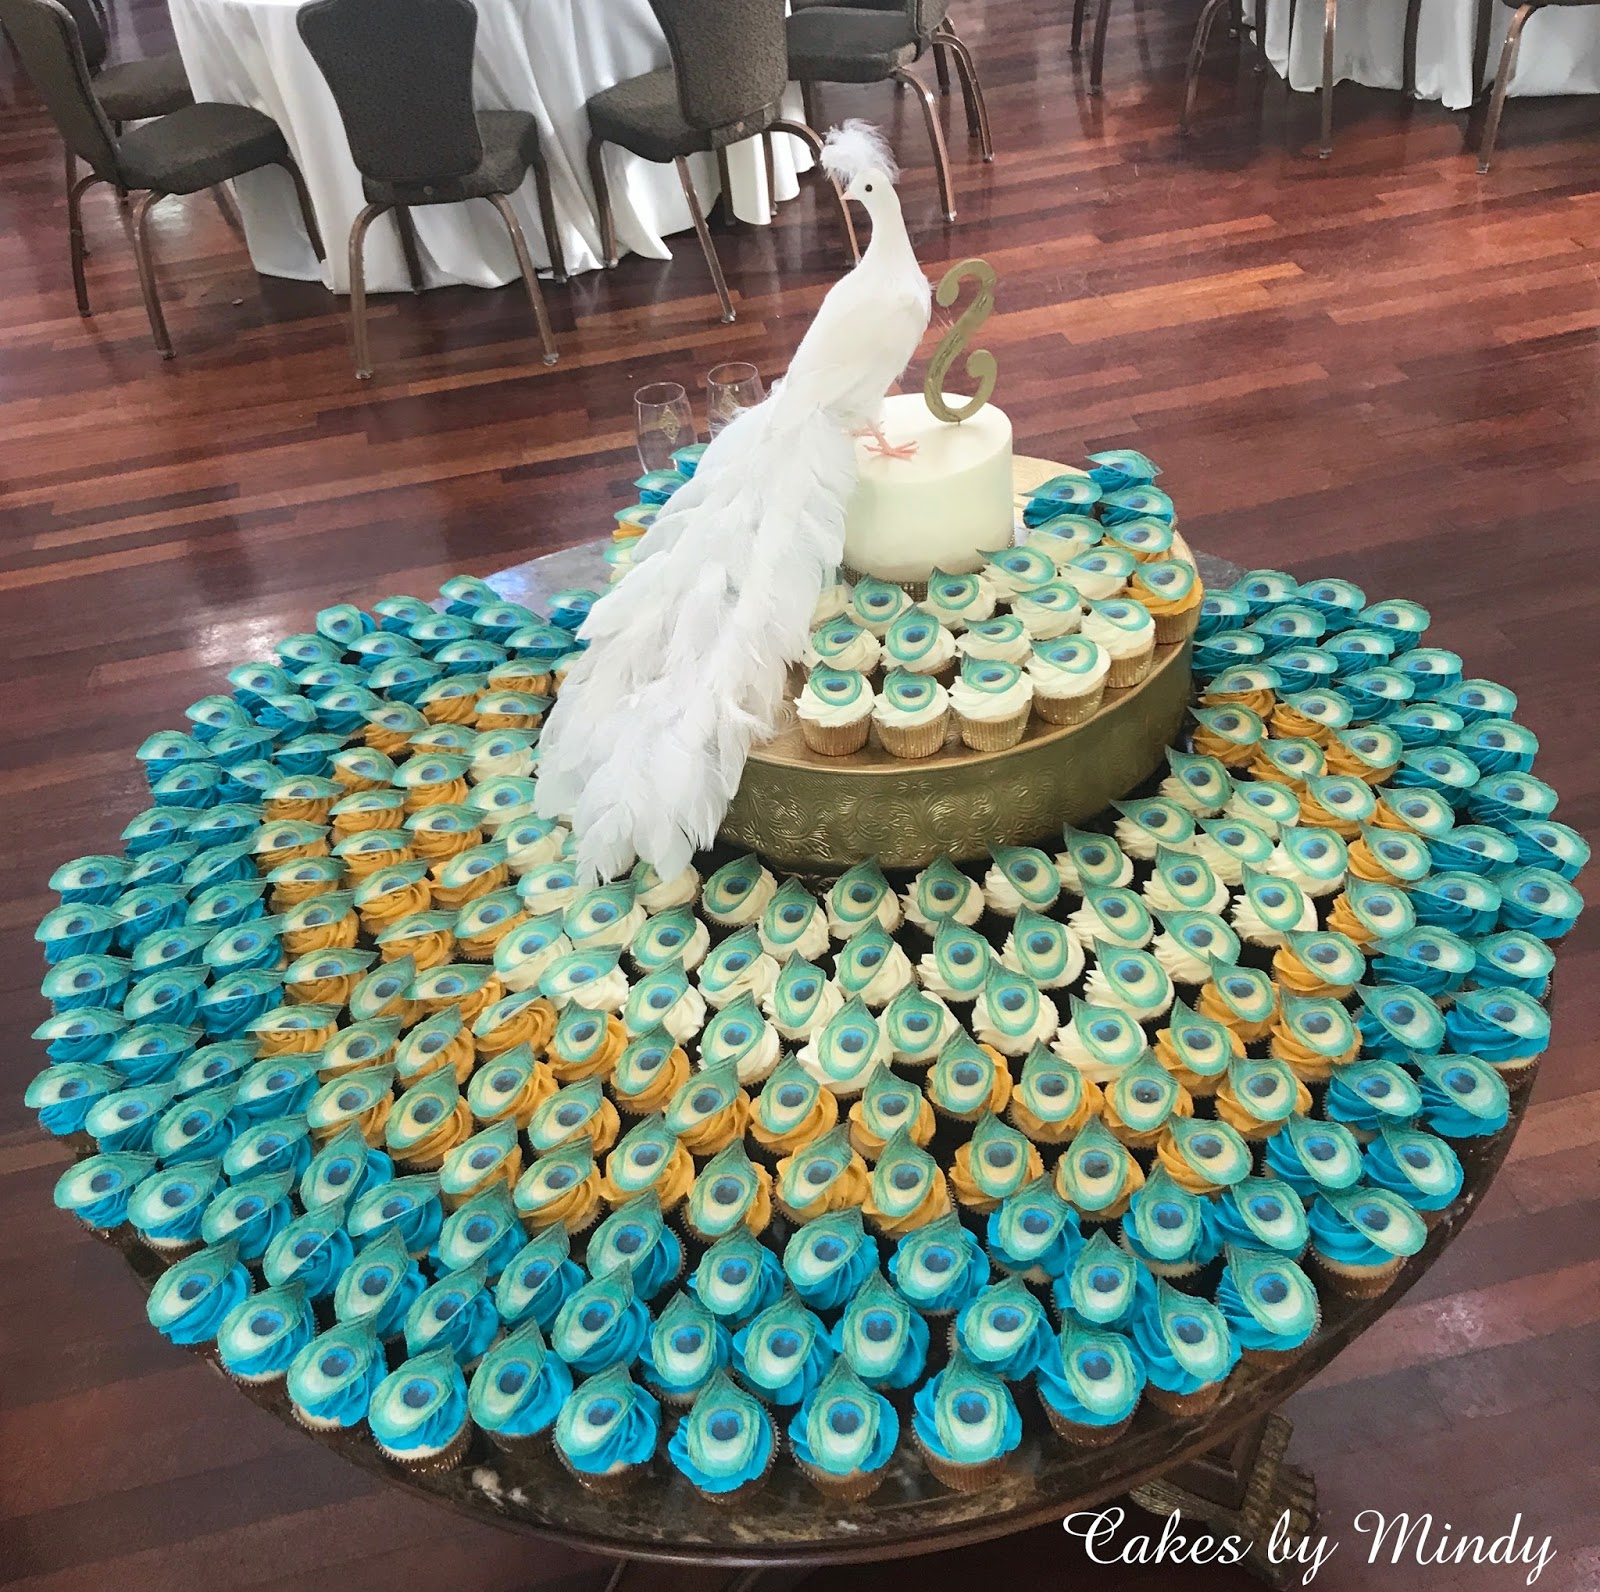 Unique Cupcake Wedding Ideas: Cakes By Mindy: Peacock Wedding Cupcakes With Edible Fleathers